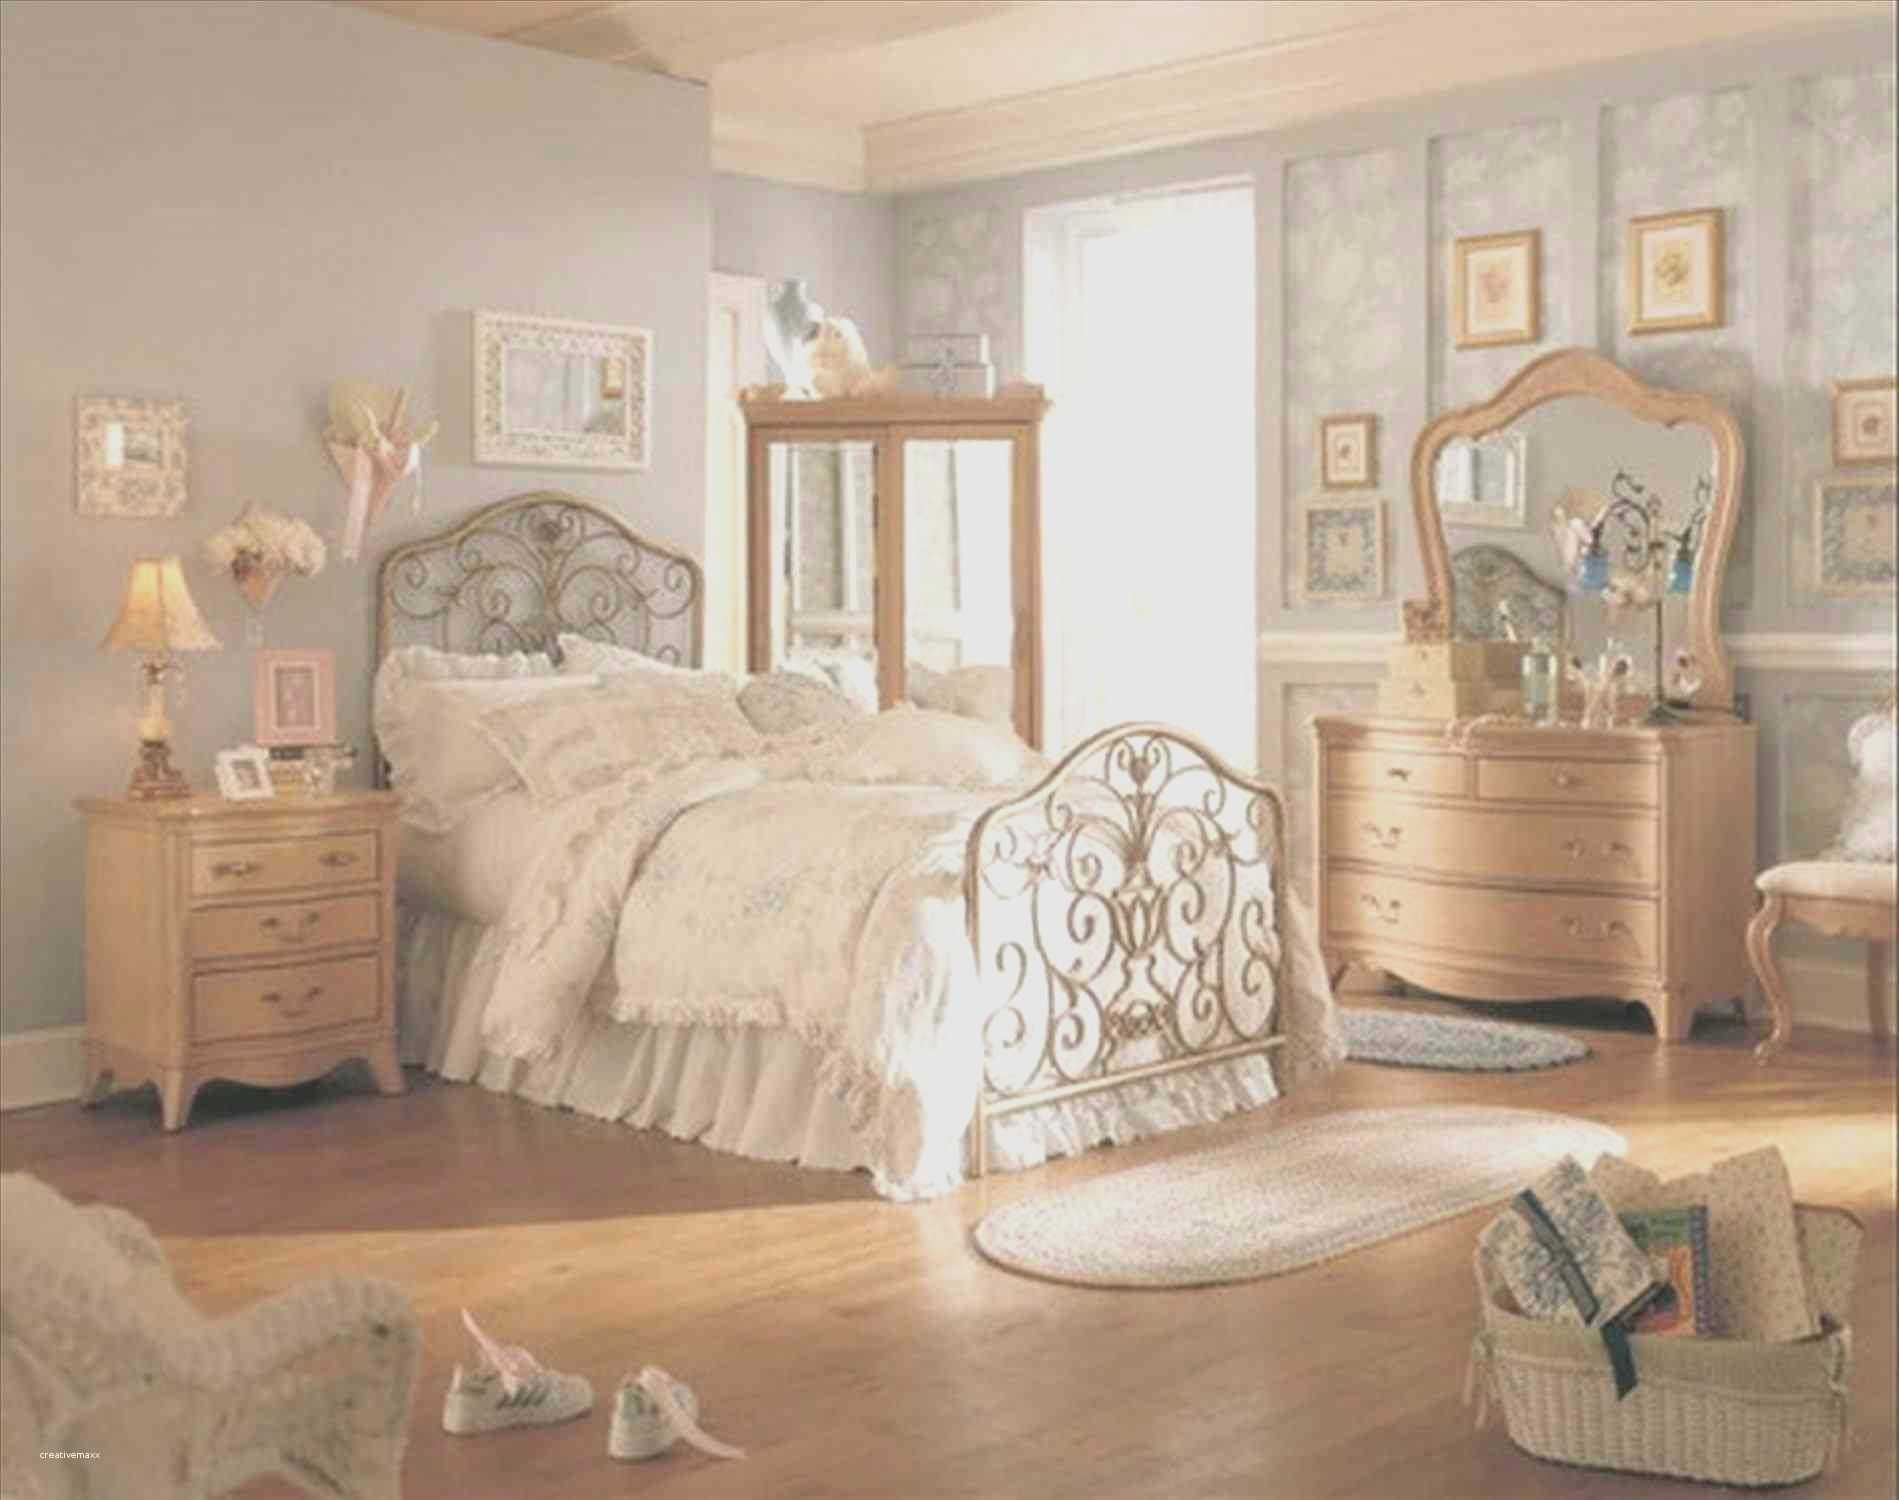 Etonnant Bedroom Ideas For Teenage Girls Vintage   Beautiful Bedroom Ideas For Teenage  Girls Vintage, Chic Modern Teenage Girls Bedroom Ideas Teens Room Bedroom  ...